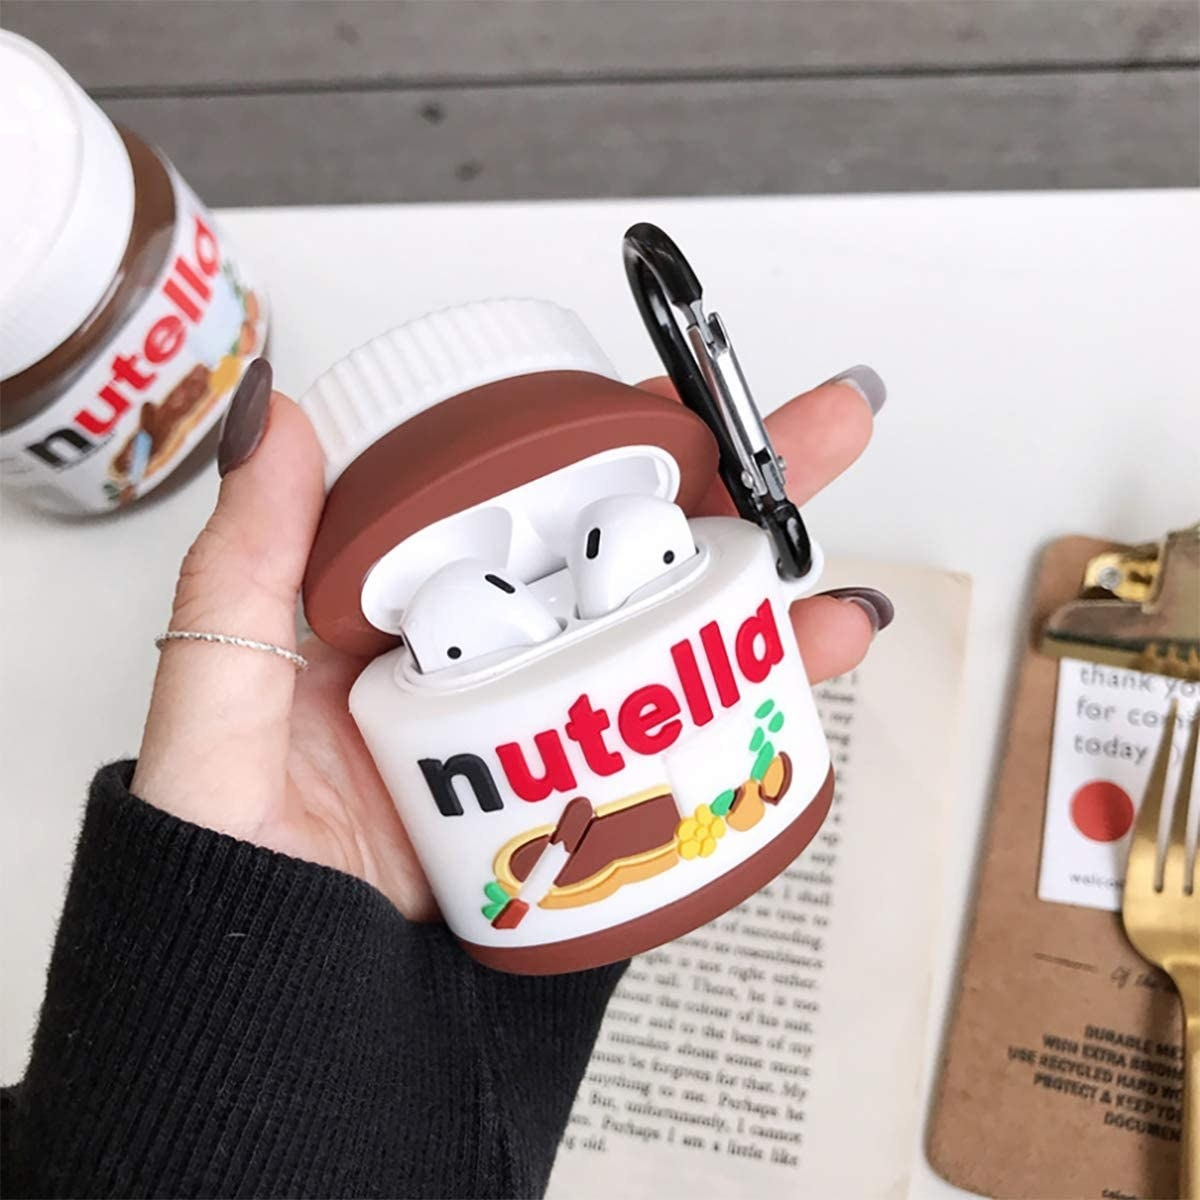 Model holding a silicone AirPods case modeled after a Nutella jar